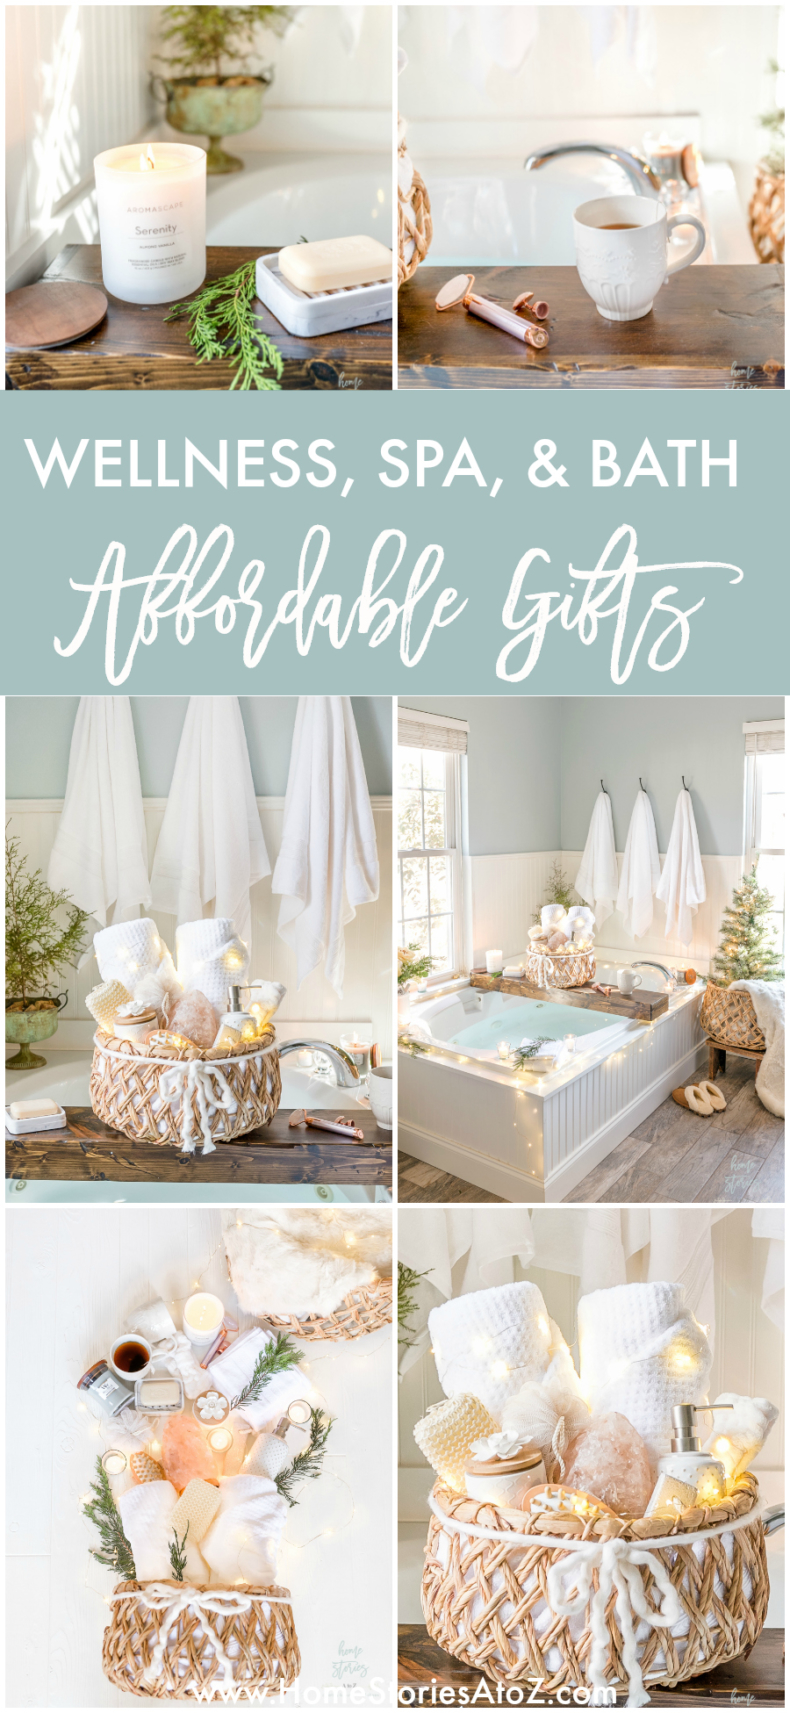 Affordable Gifts for Wellness, Spa, & Bath